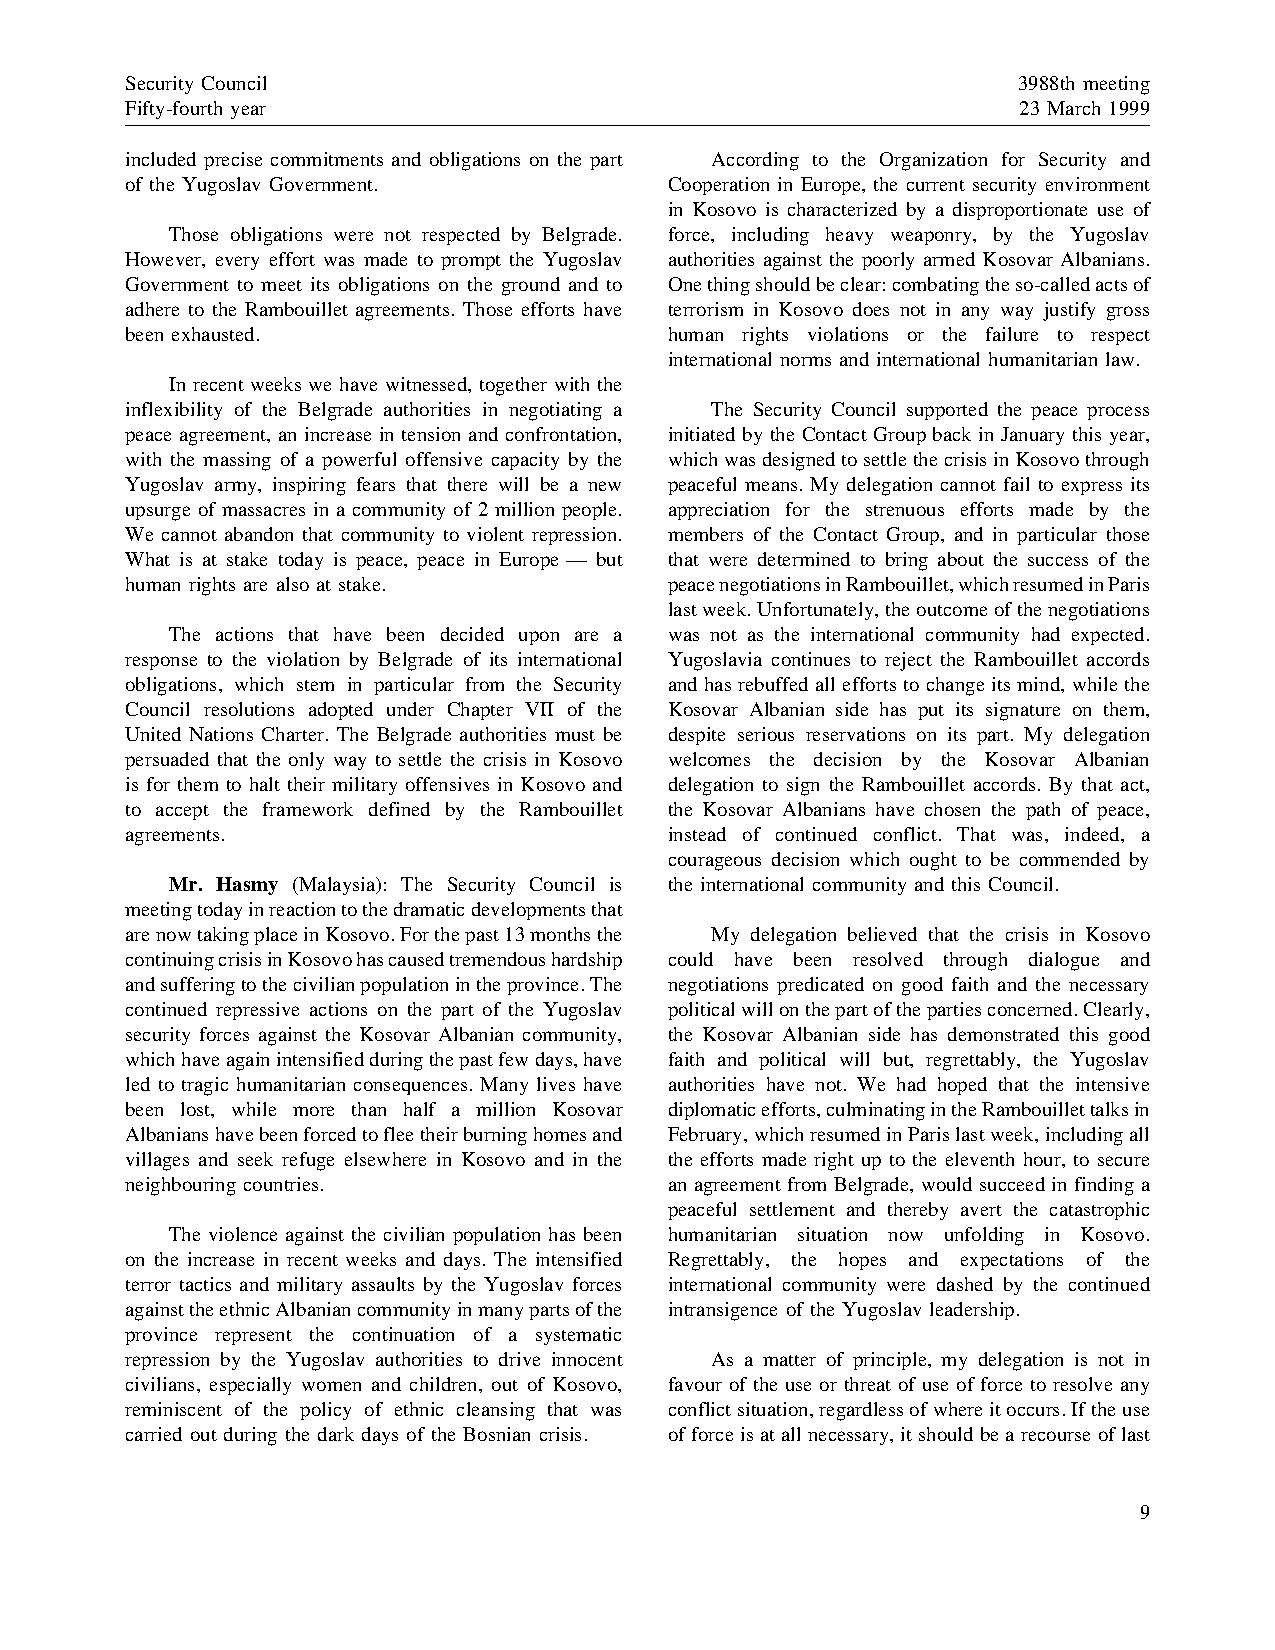 Page United Nations Security Council Meeting V1 9